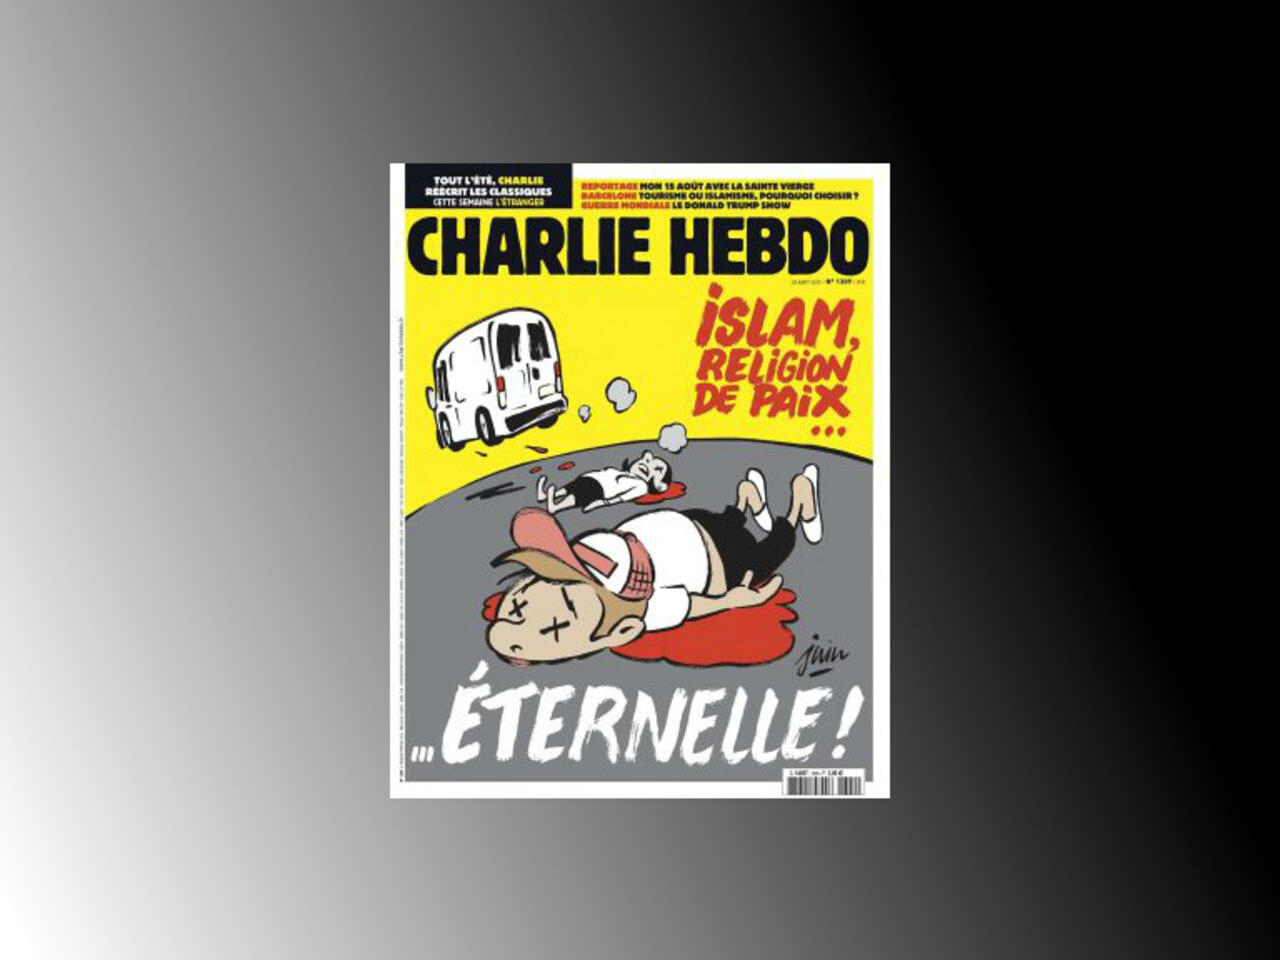 French Satirical Magazine Charlie Hebdo Draws More Controversy With New Cartoon On Islam